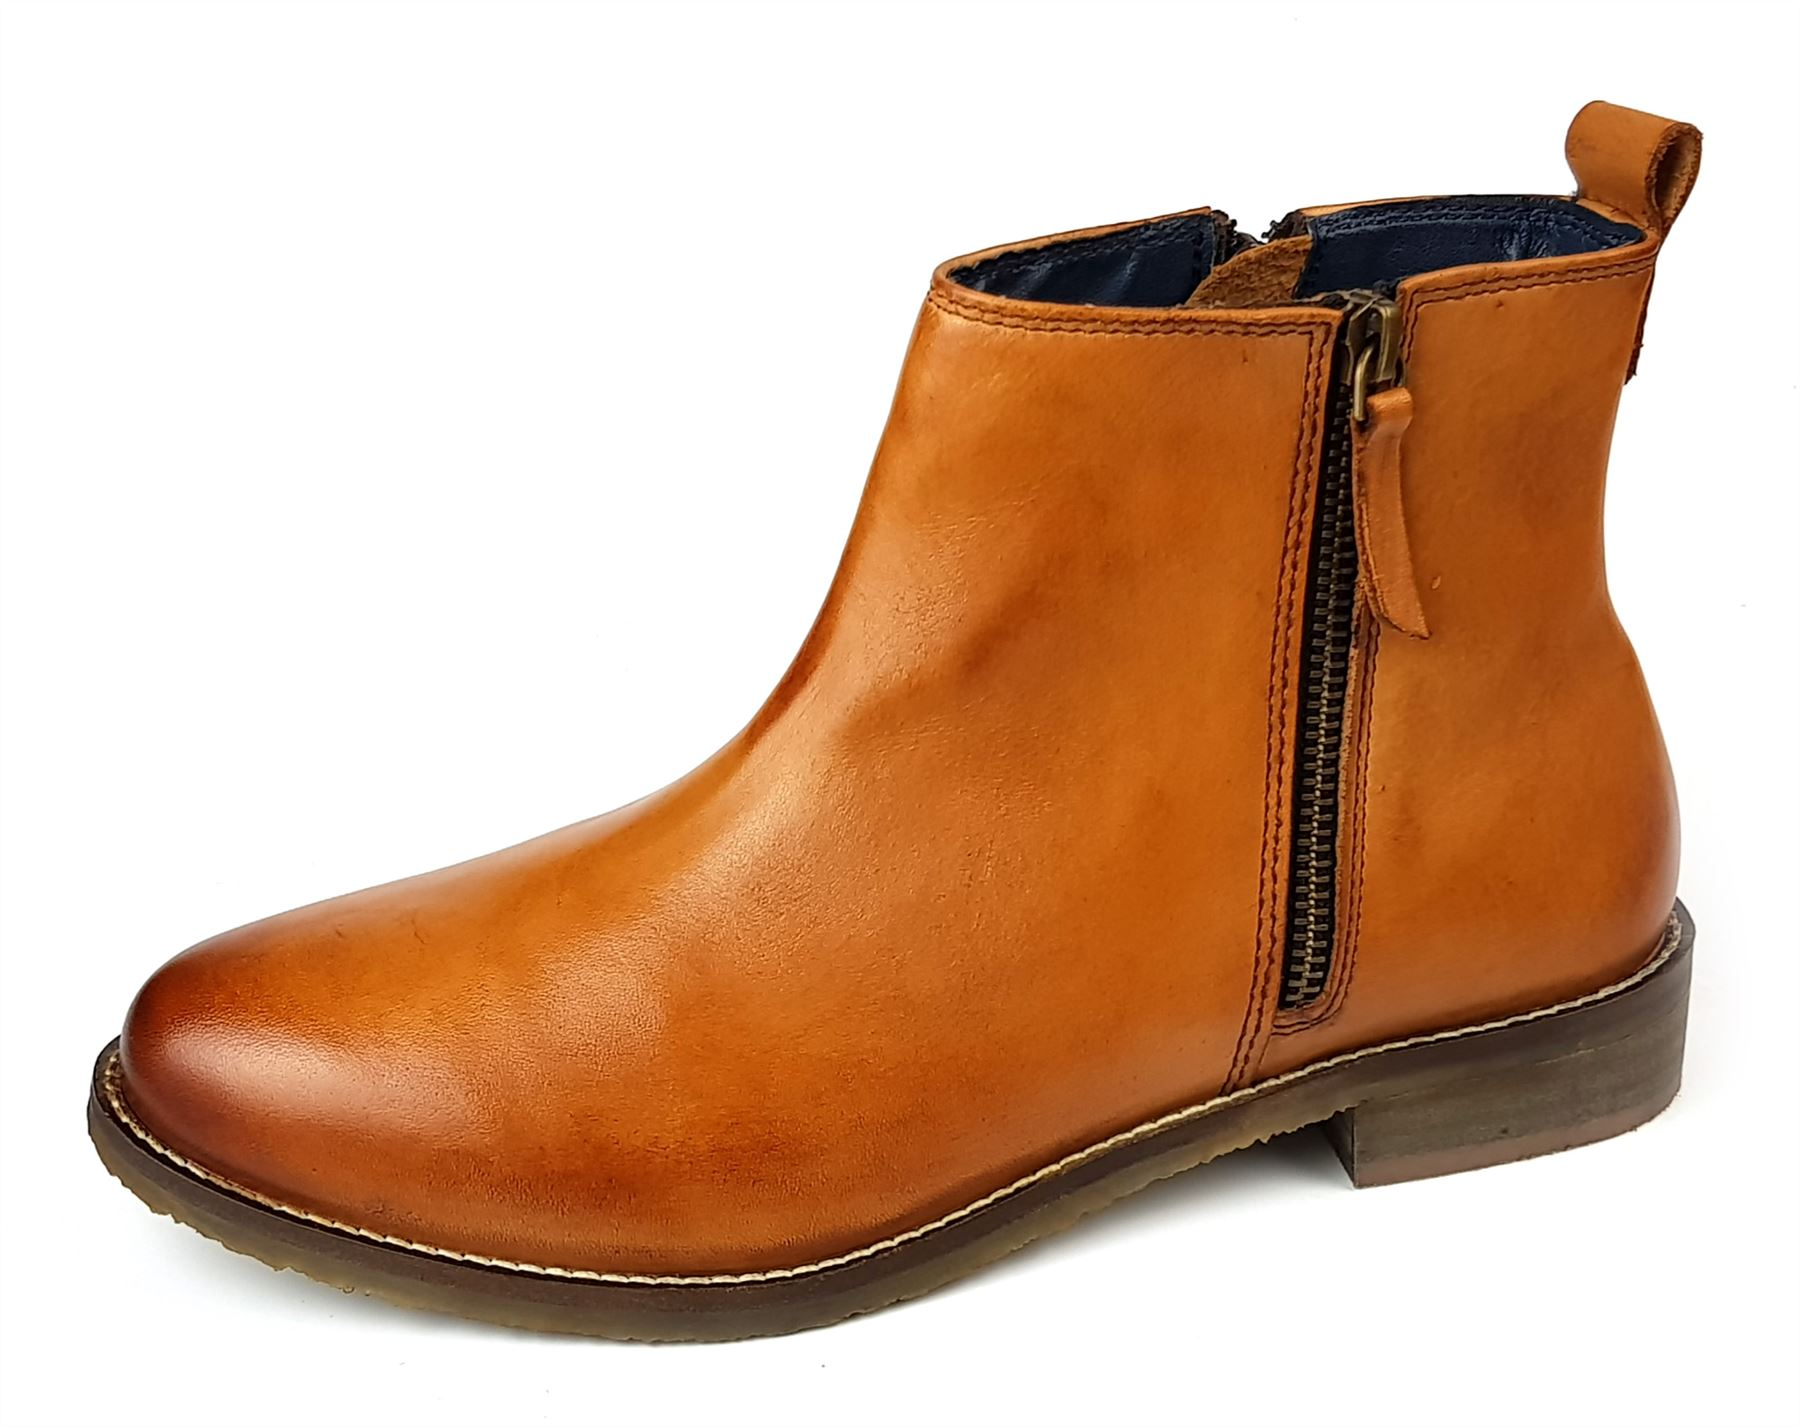 685f2e6ce0605 Details about Womens Ankle Boots Low Mid Leather Tan Brown Chelsea Zip Up  Size 4 5 6 7 8 9